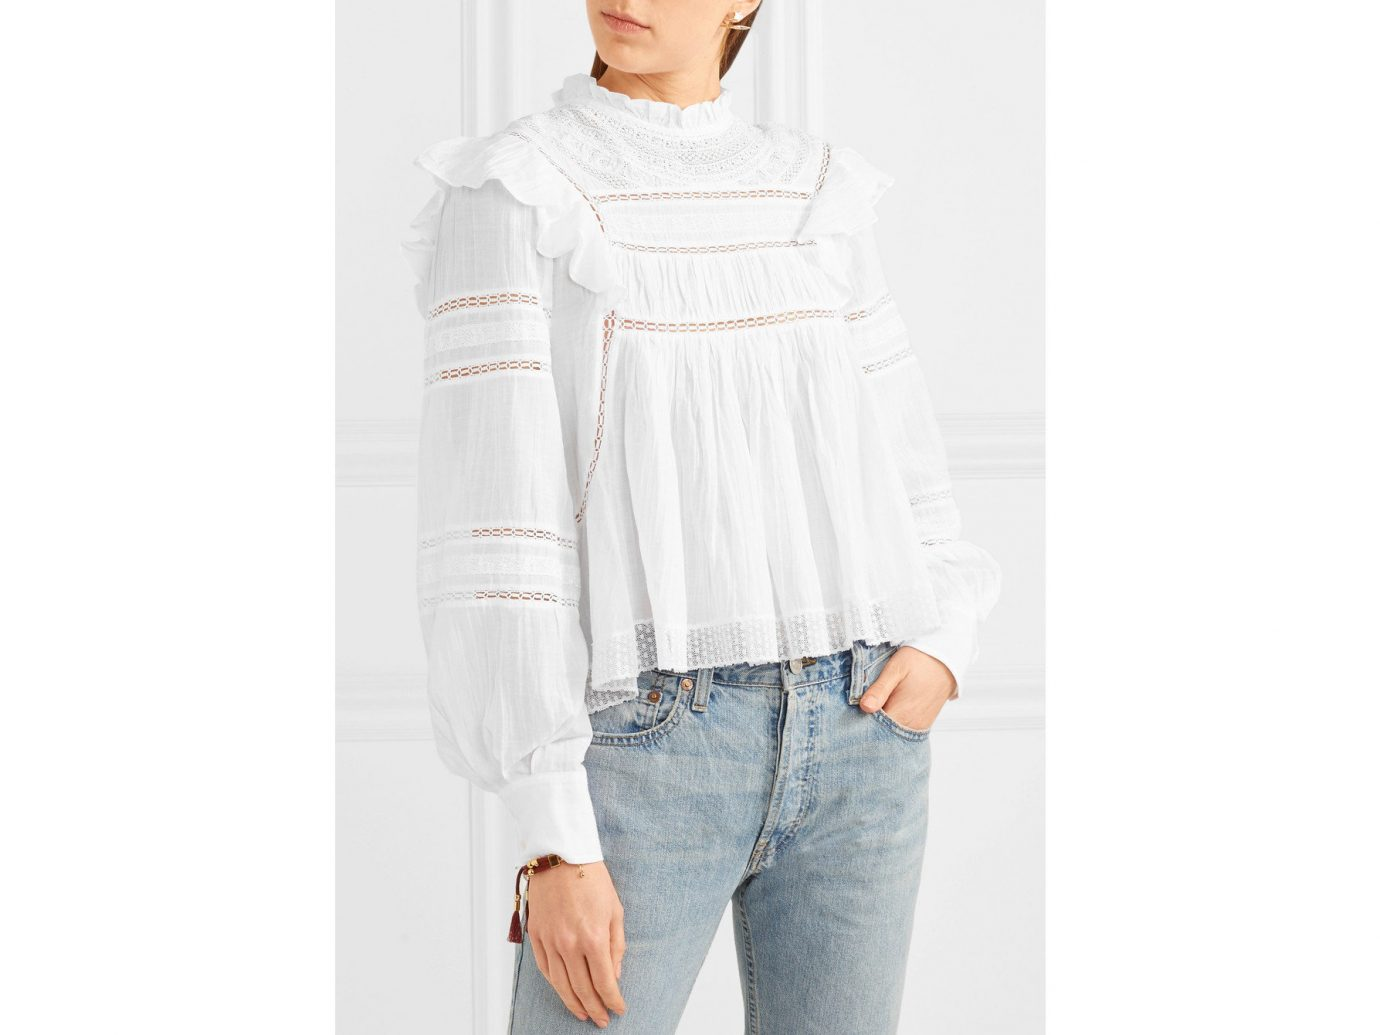 France Style + Design Travel Shop person clothing white shoulder standing sleeve joint outerwear neck posing blouse dressed